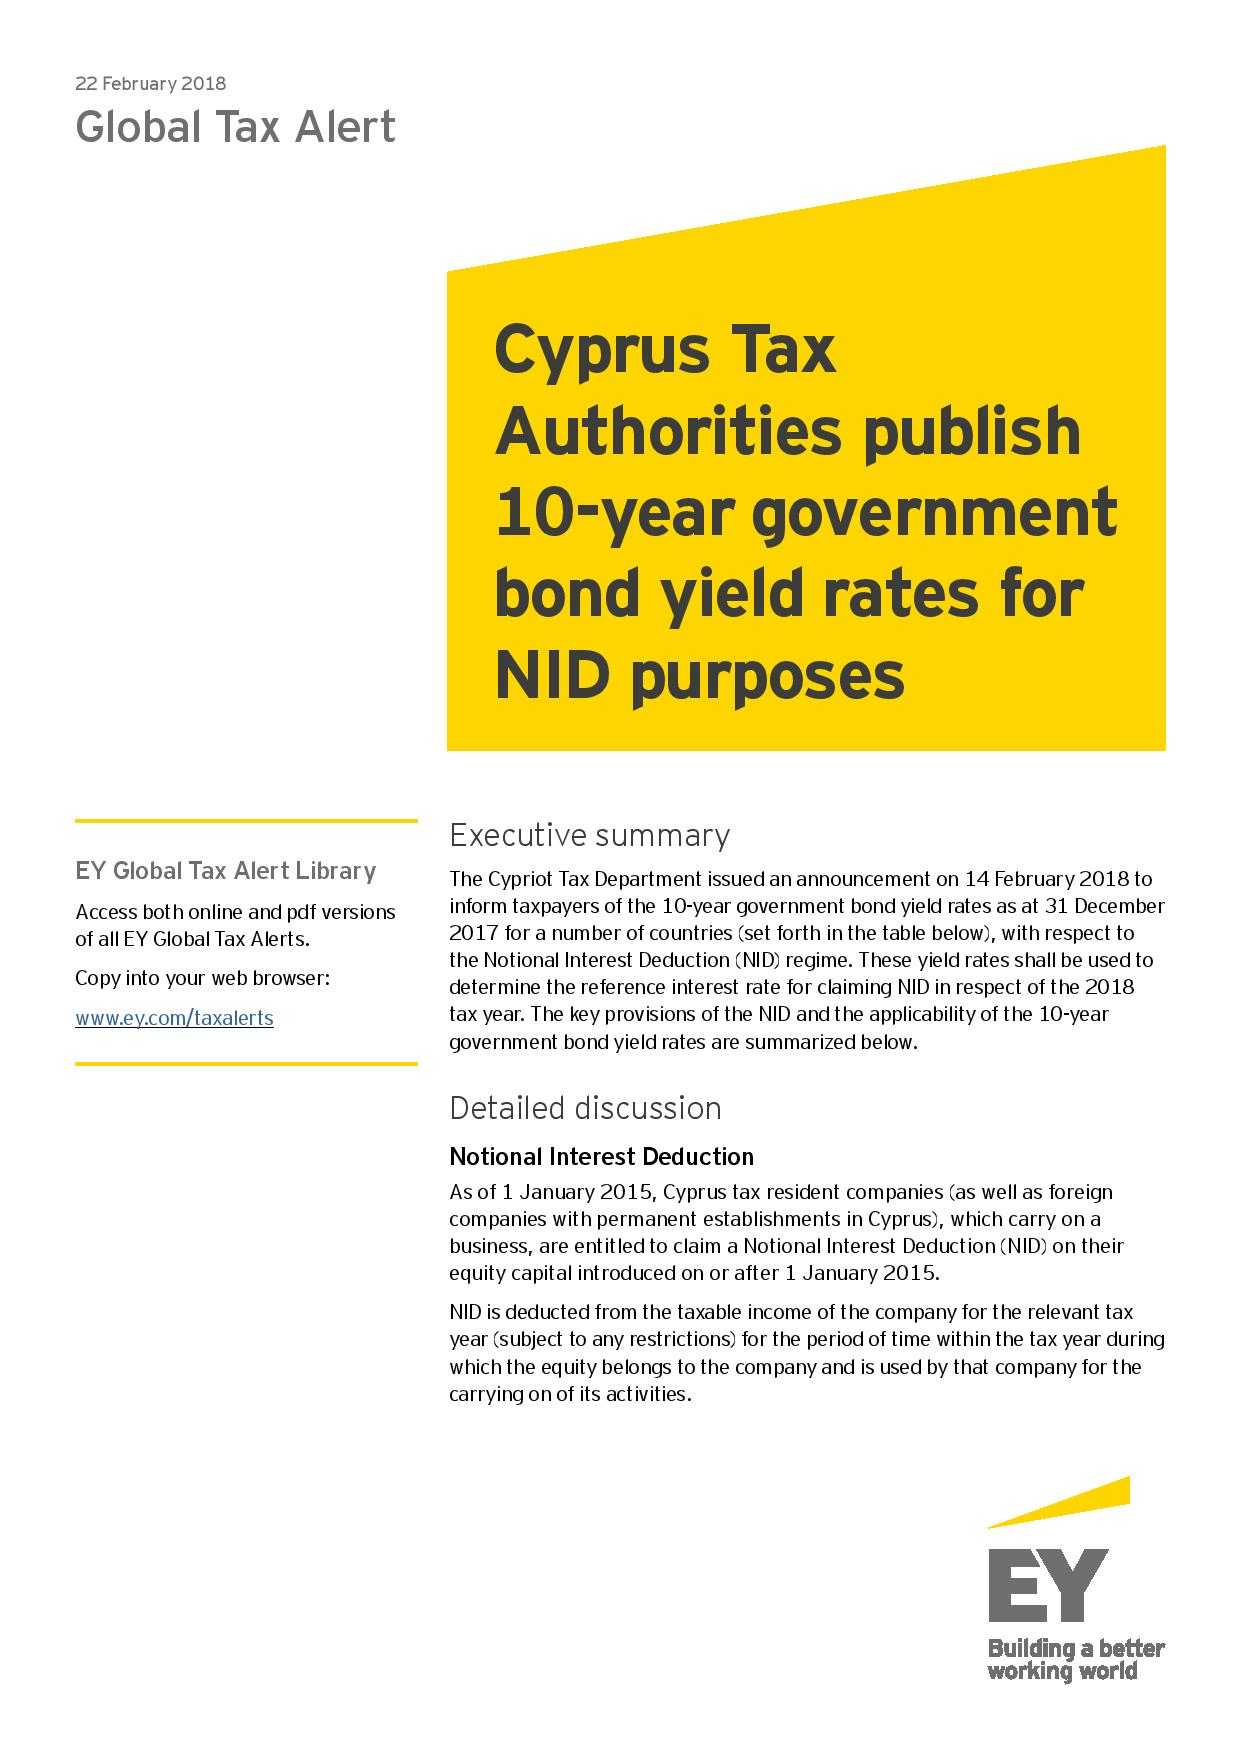 EY Global Tax Alert February 2018